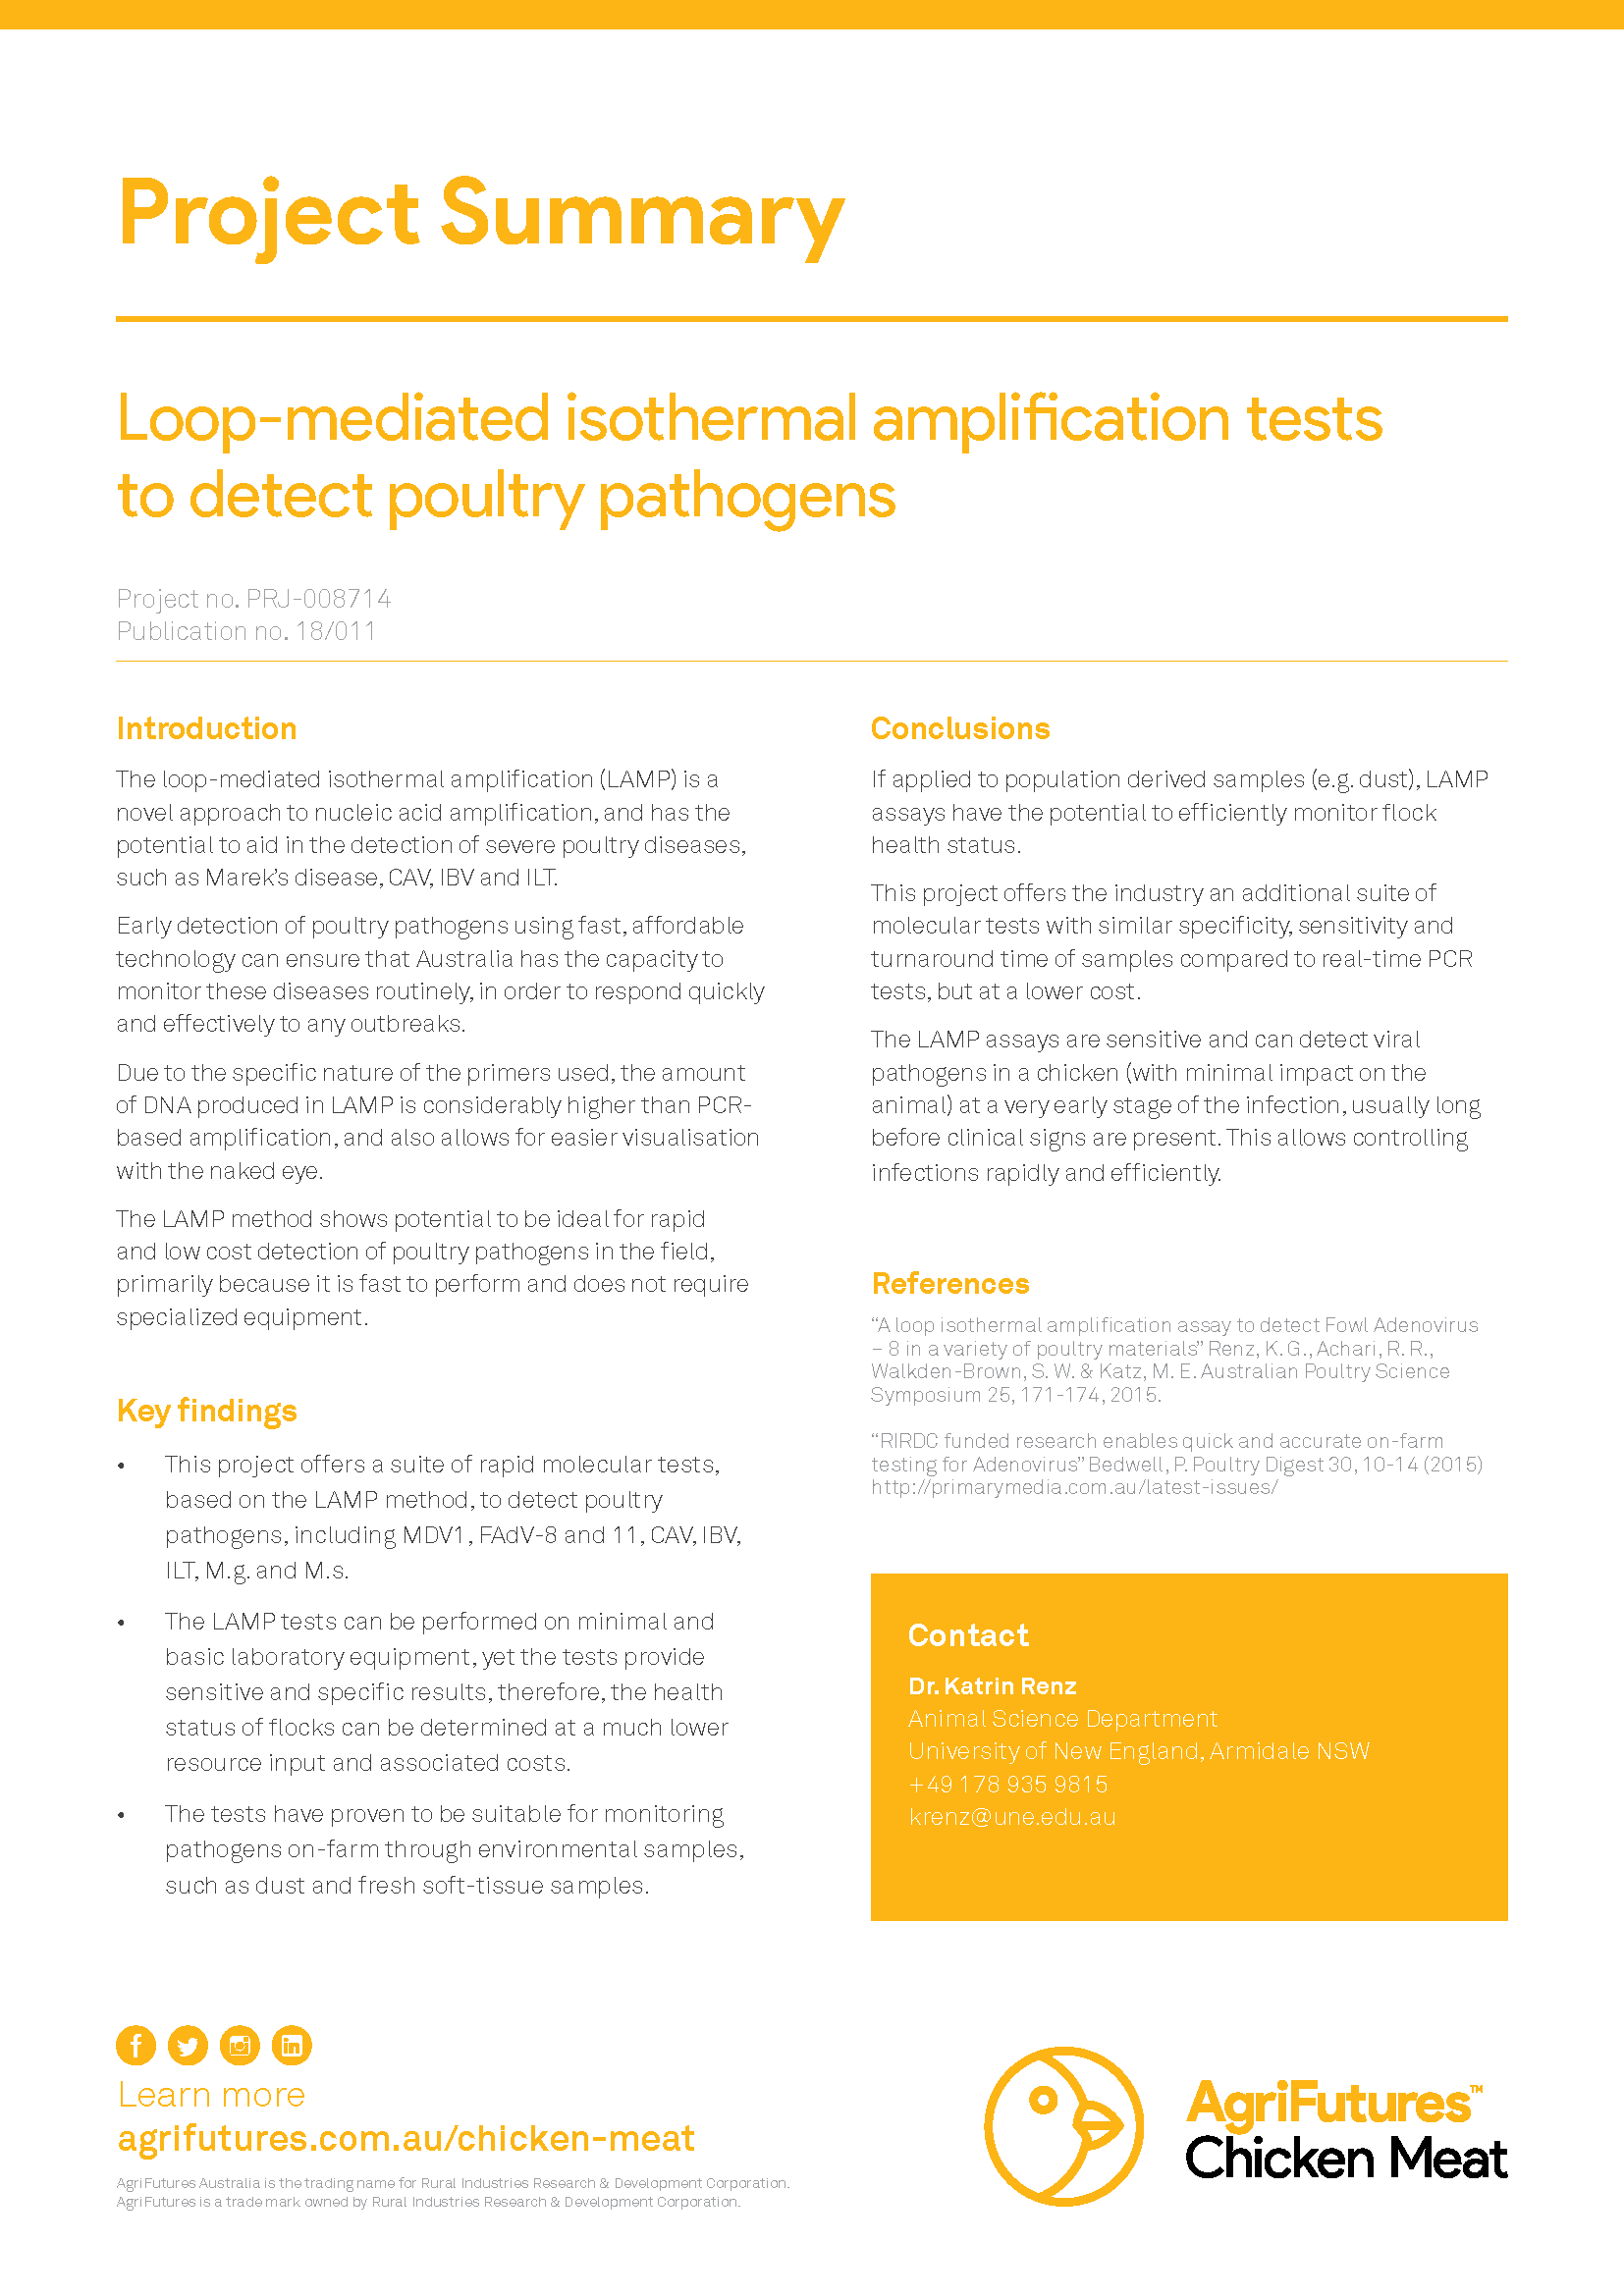 Project summary: Loop-mediated isothermal amplification tests to detect poultry pathogens - image